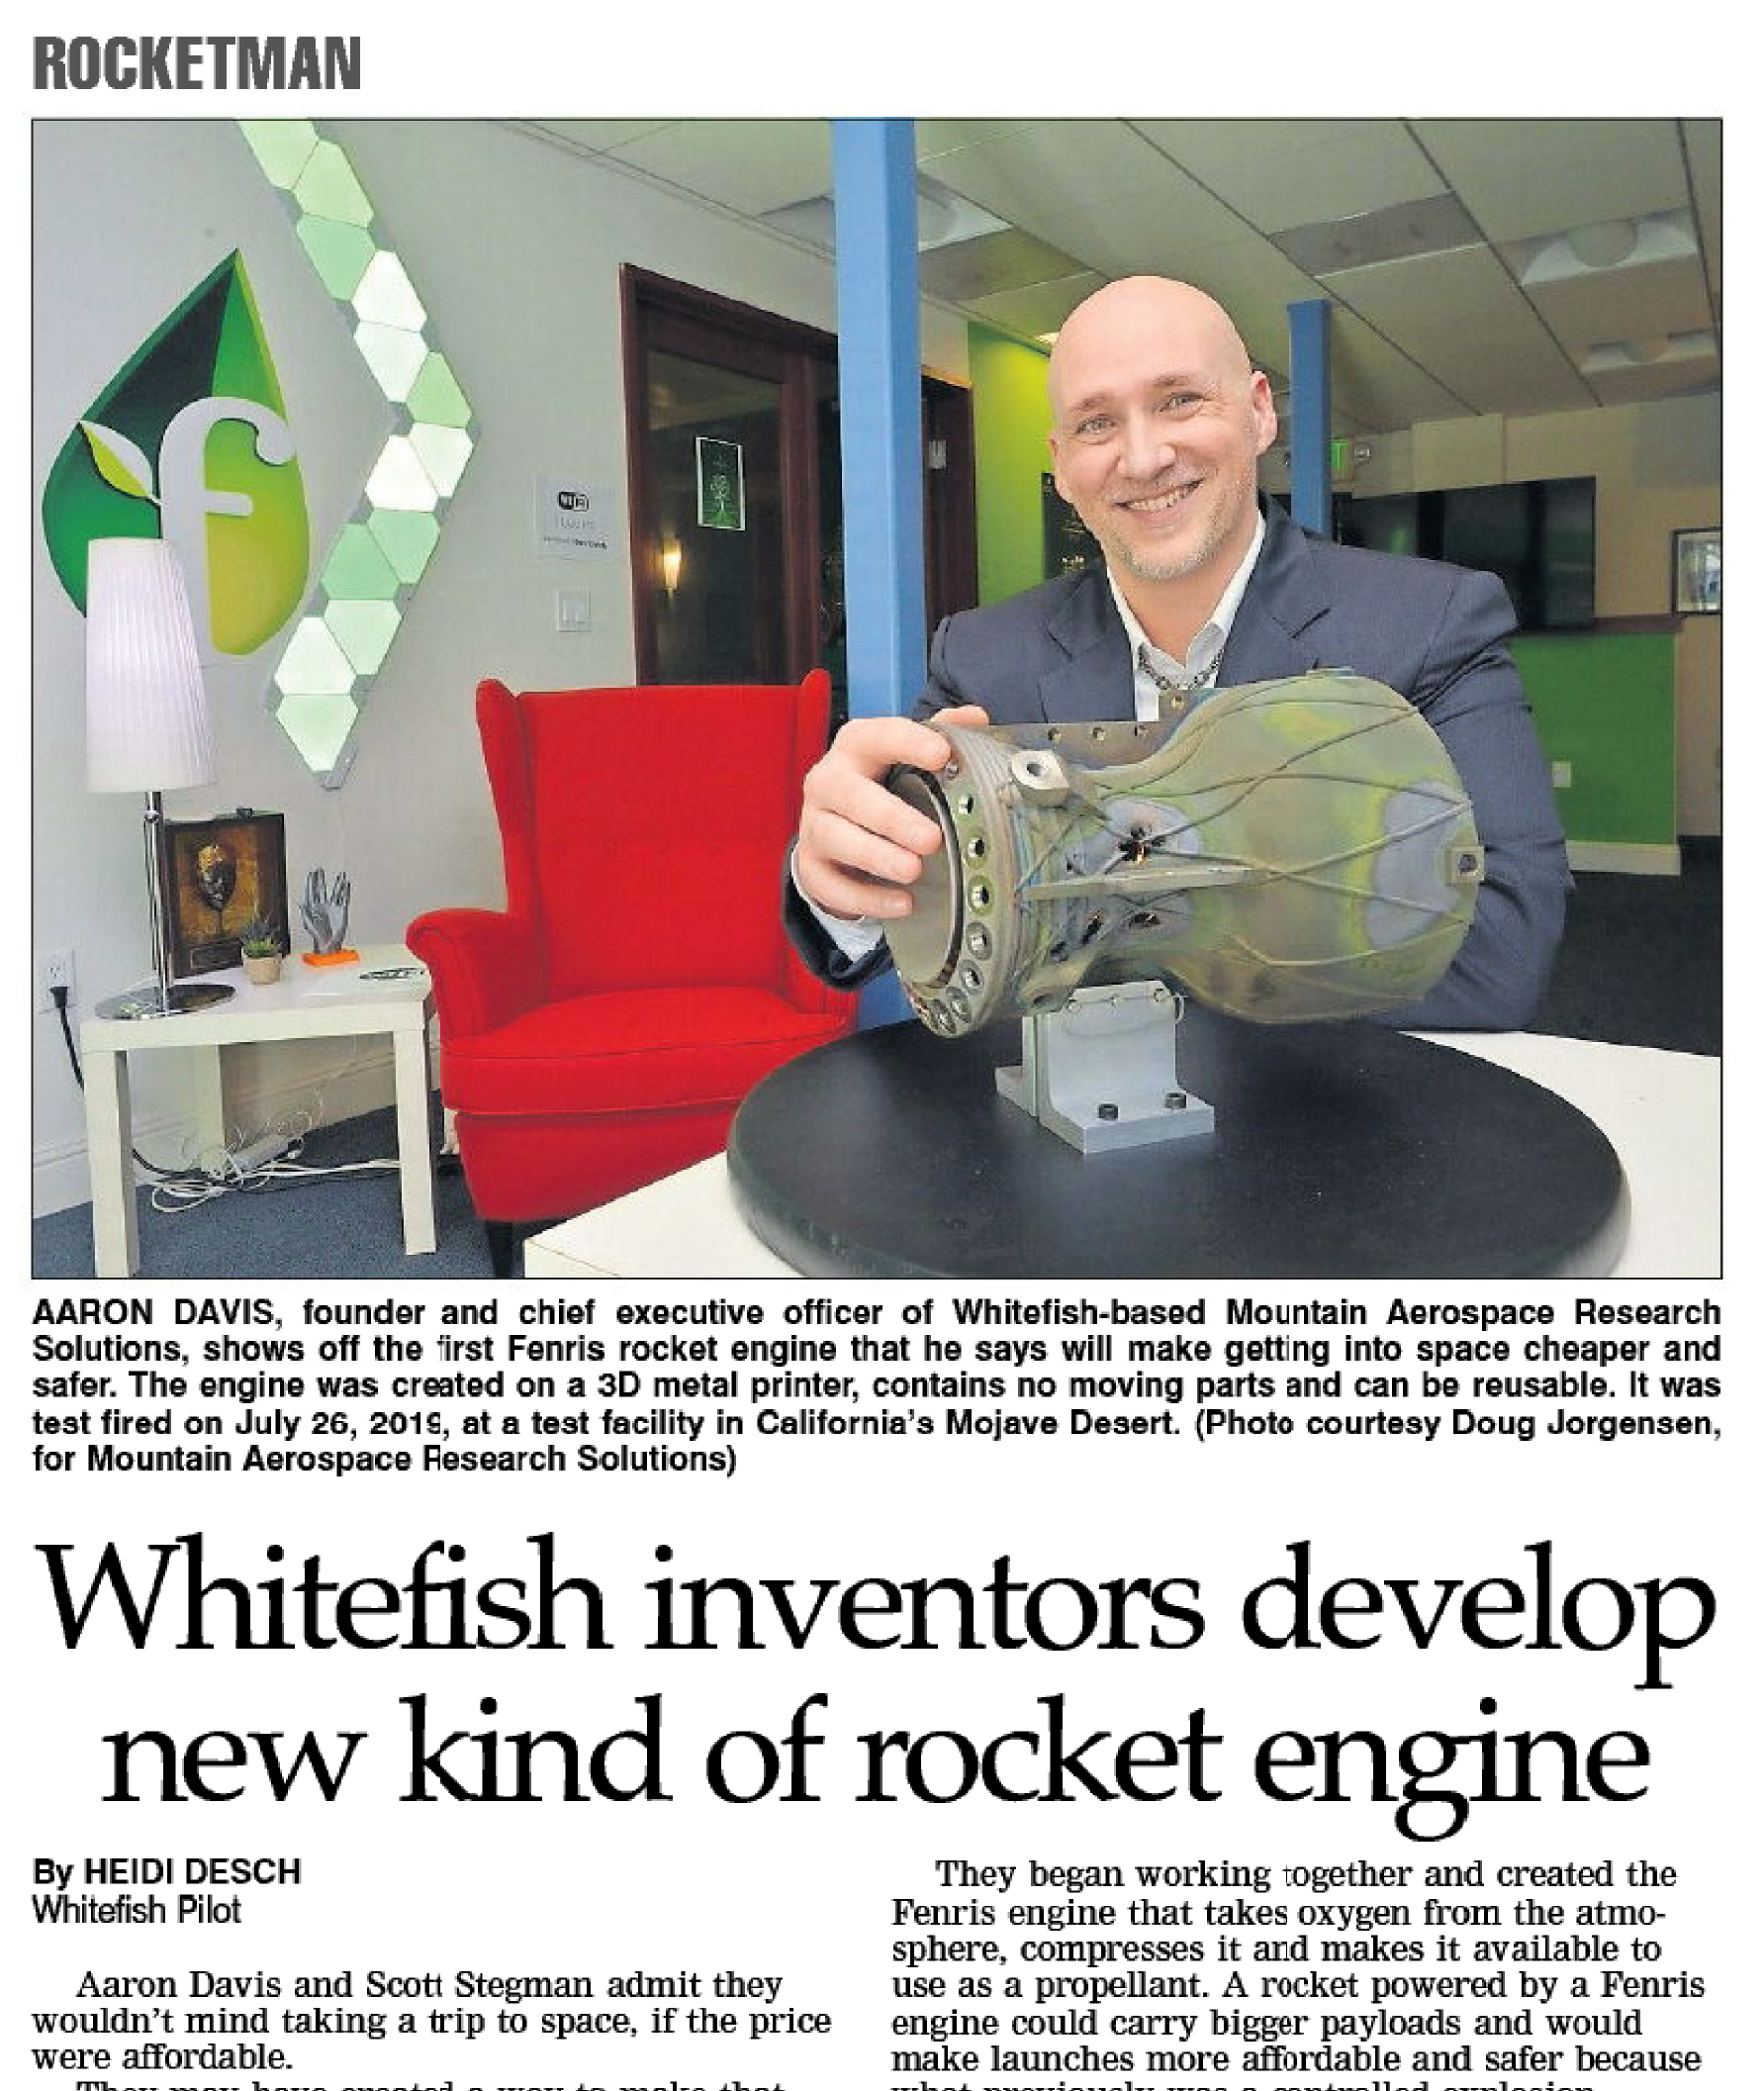 gallery/2020-02-29-mars-fenris-engine-press-daily-interlake